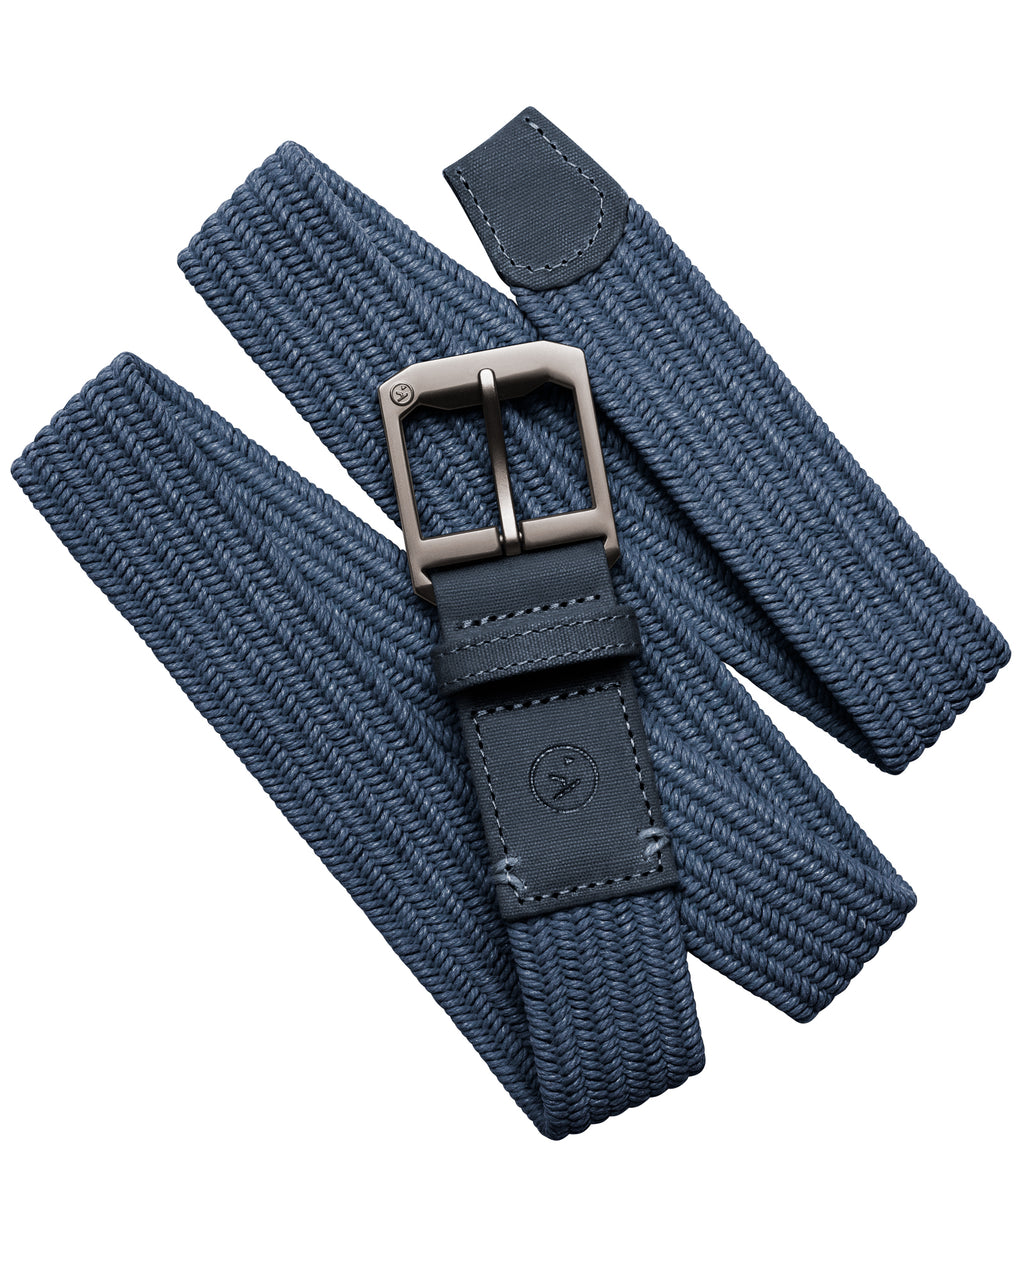 Arcade Belts Norrland Moon Blue